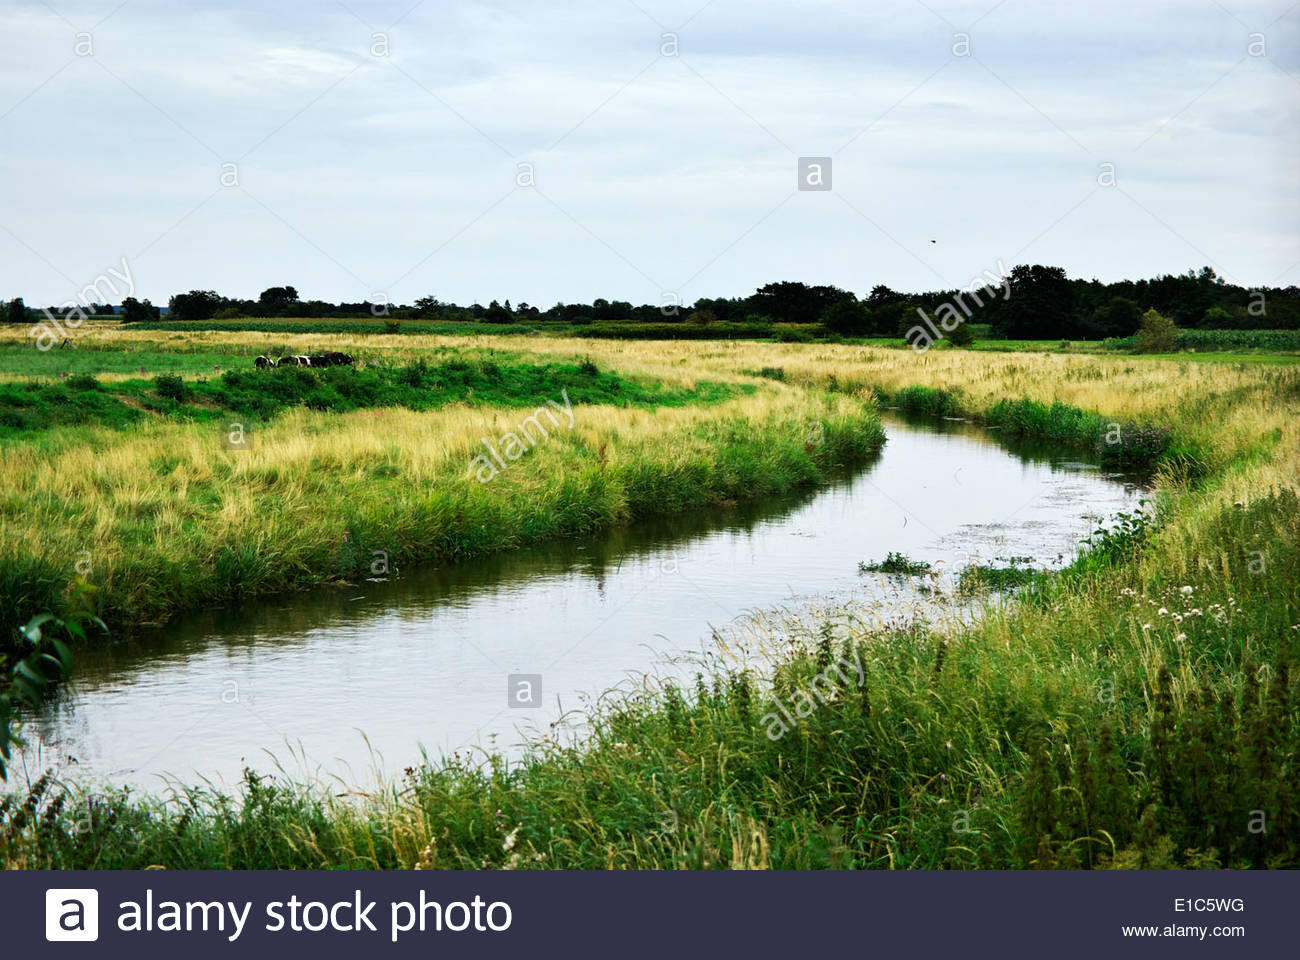 The Rheider Au is a tributary of the Treene, the artery by which Viking ships were transported to the North Sea from Haithabu. - Stock Image